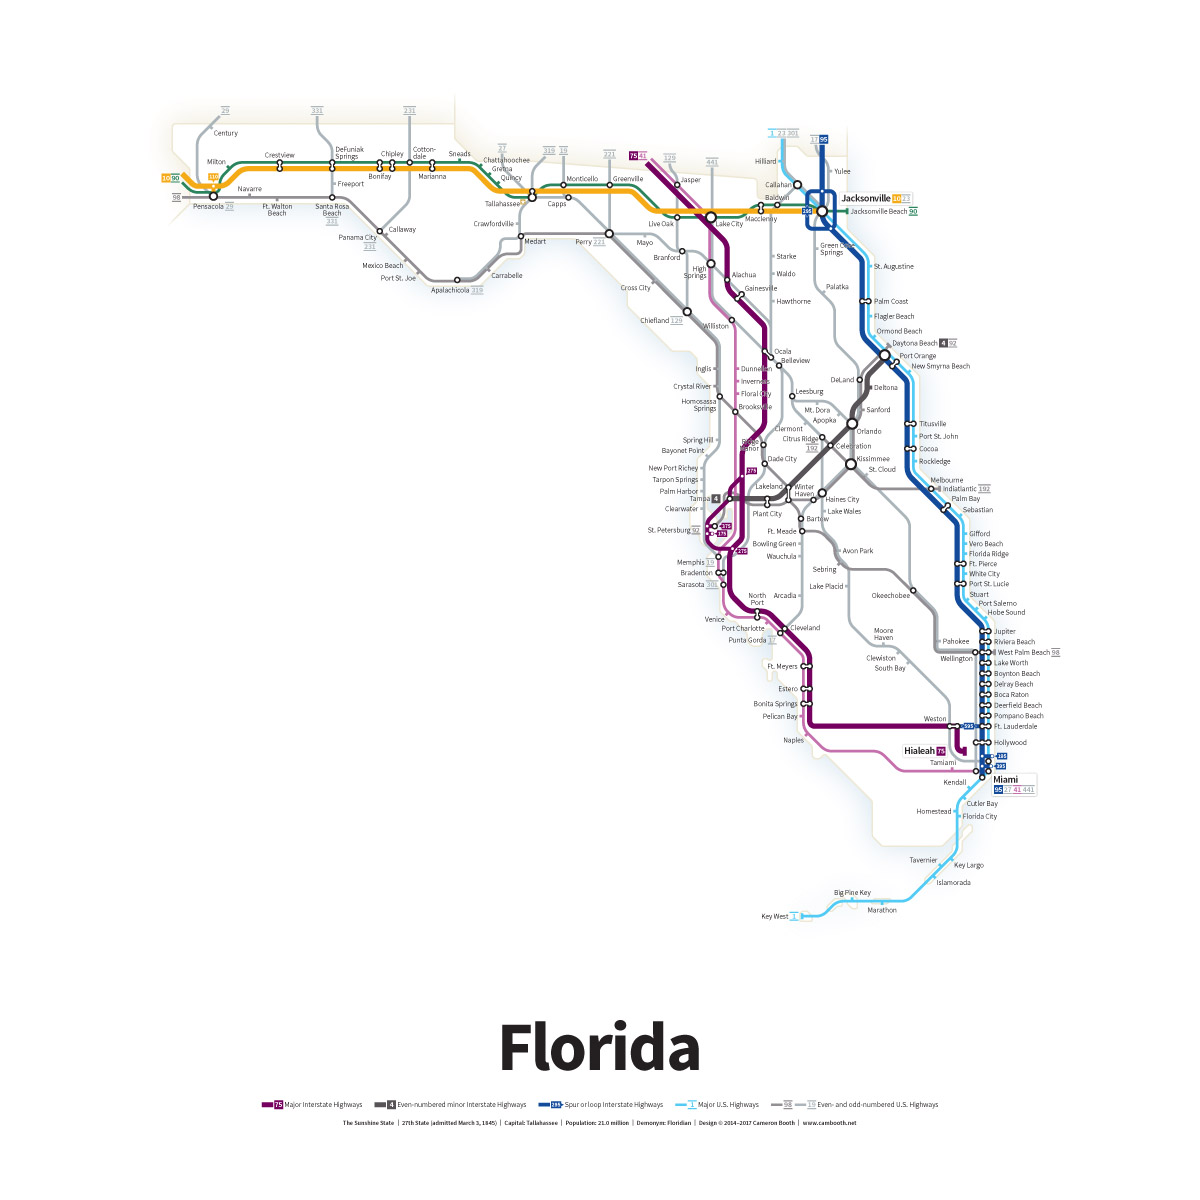 Florida Map With Highways.Highways Of The Usa Florida